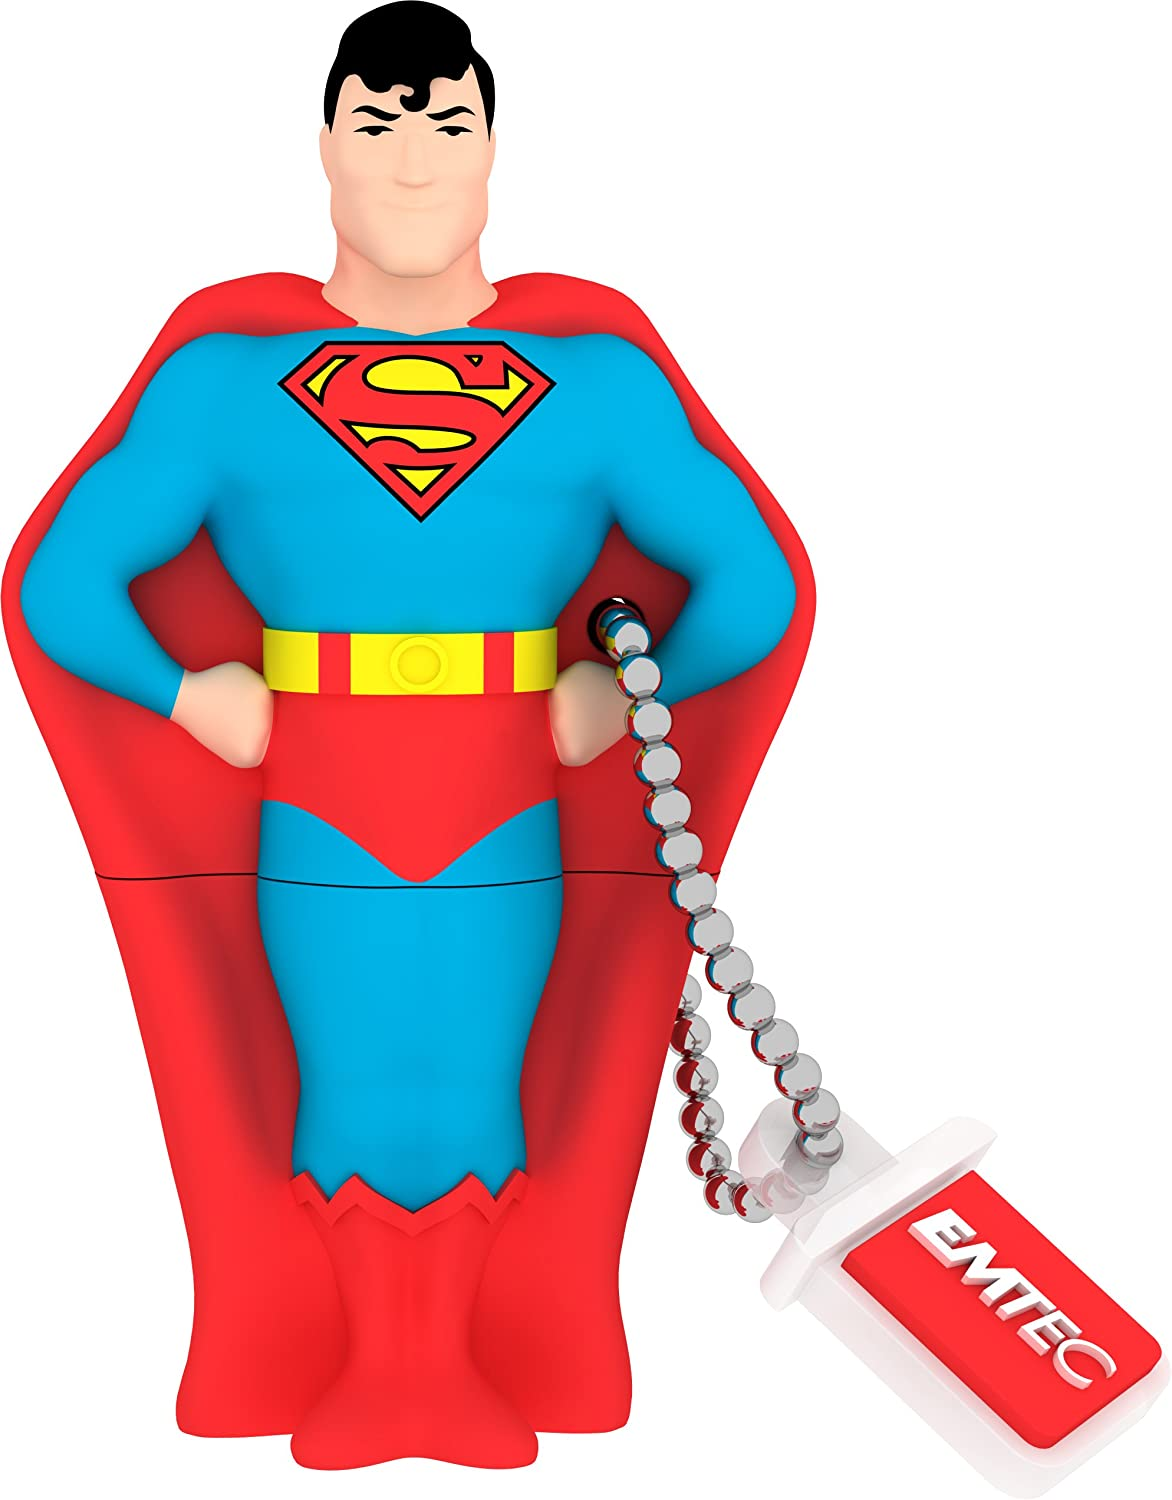 Superman USB Flash drive